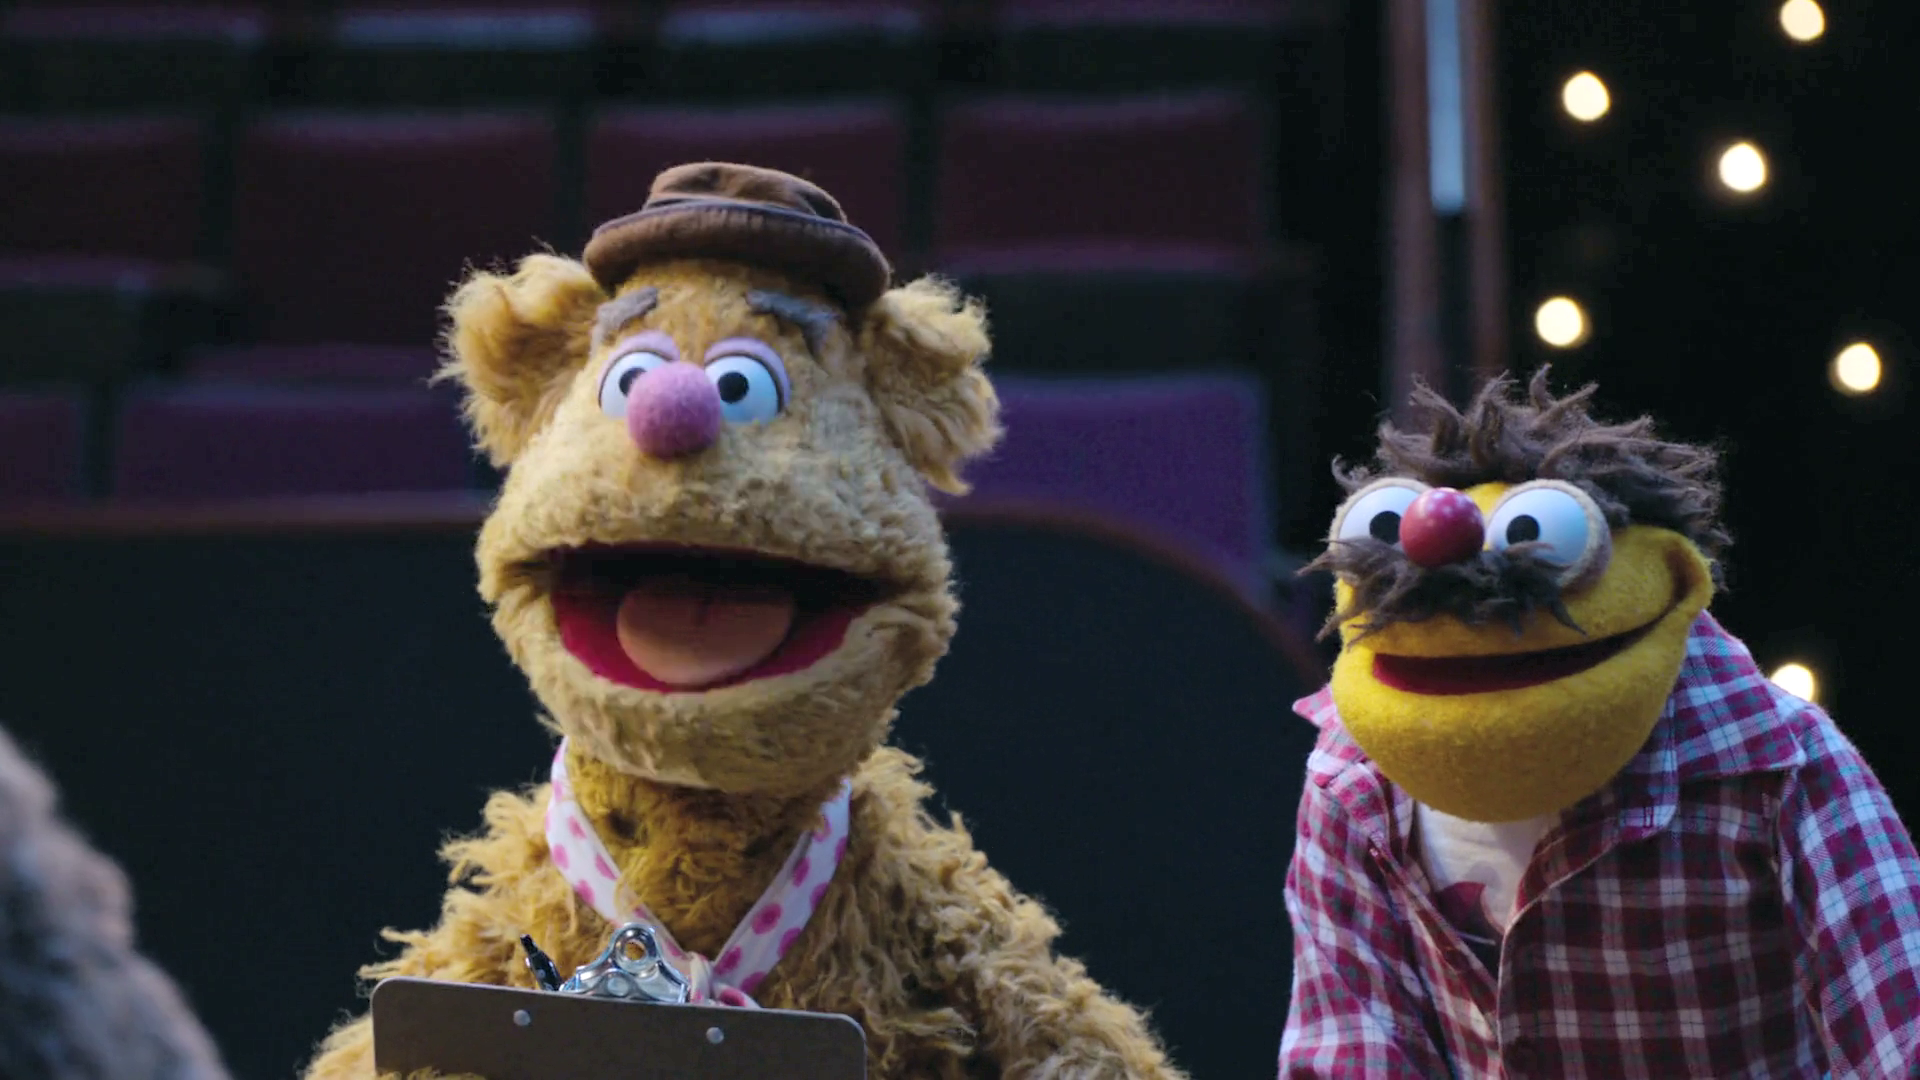 Episode 13 Recap: The Muppets | Oh My Disney